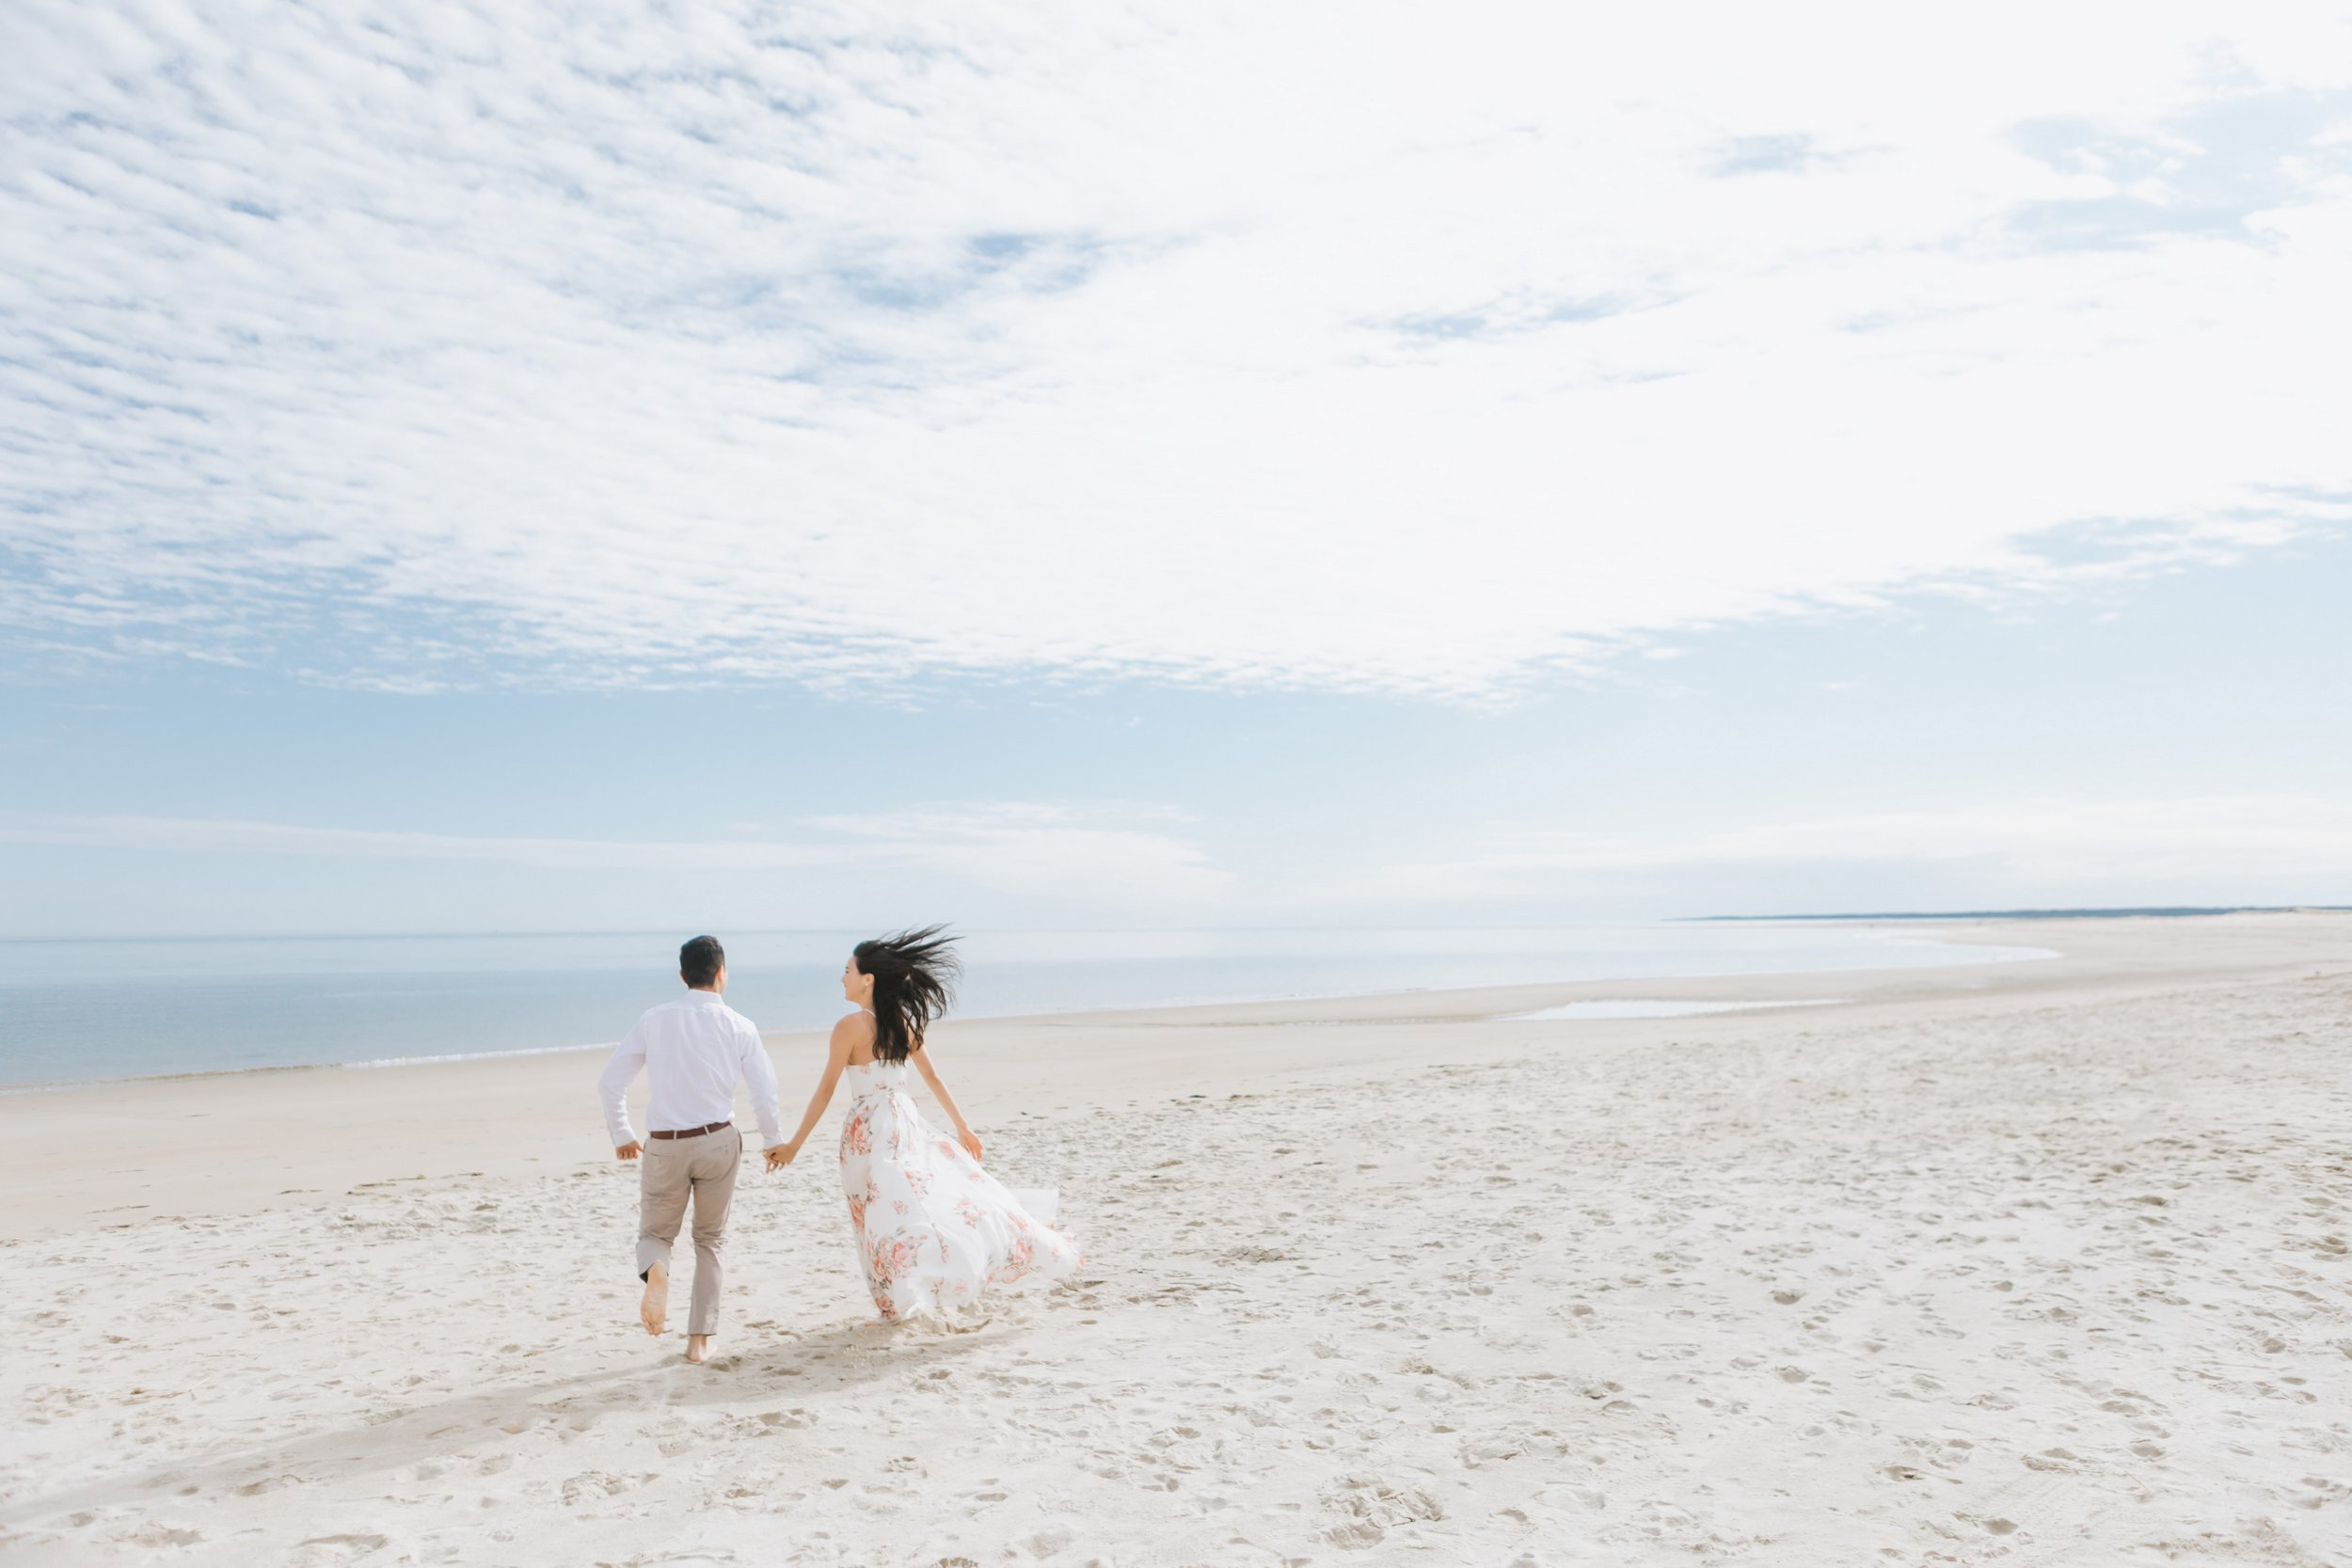 Crane-Beach-Engagement-Wedding-Lena-Mirisola-2.JPG